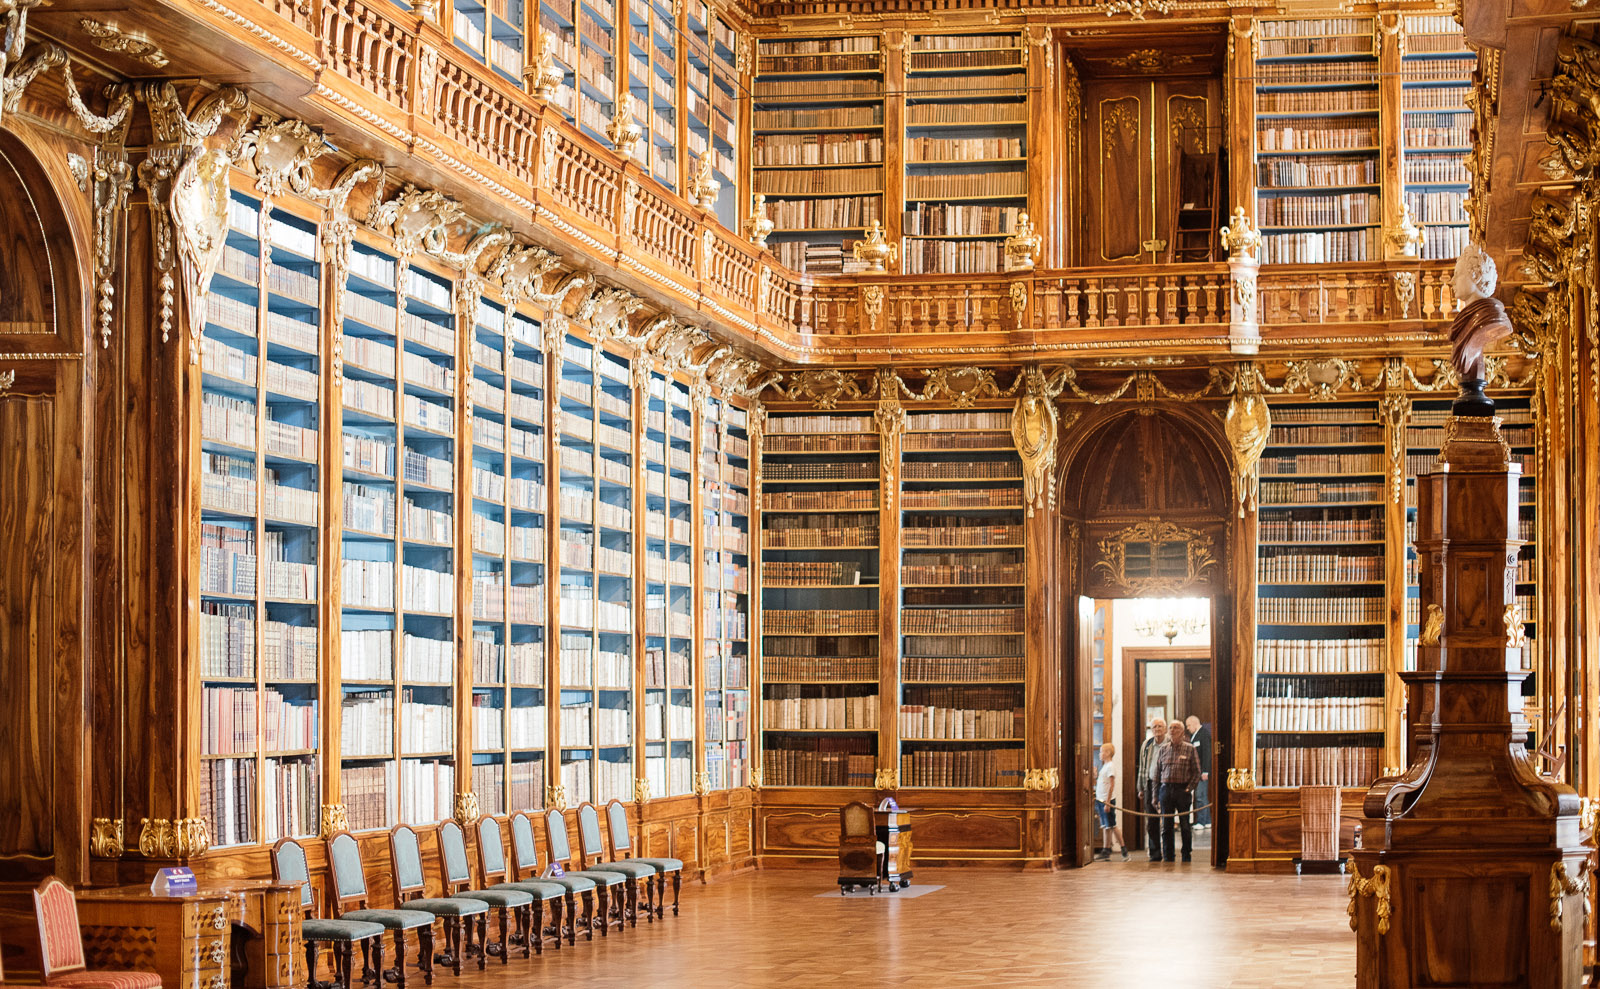 Going Behind the Scenes at the Beautiful Strahov Monastery Library in Prague